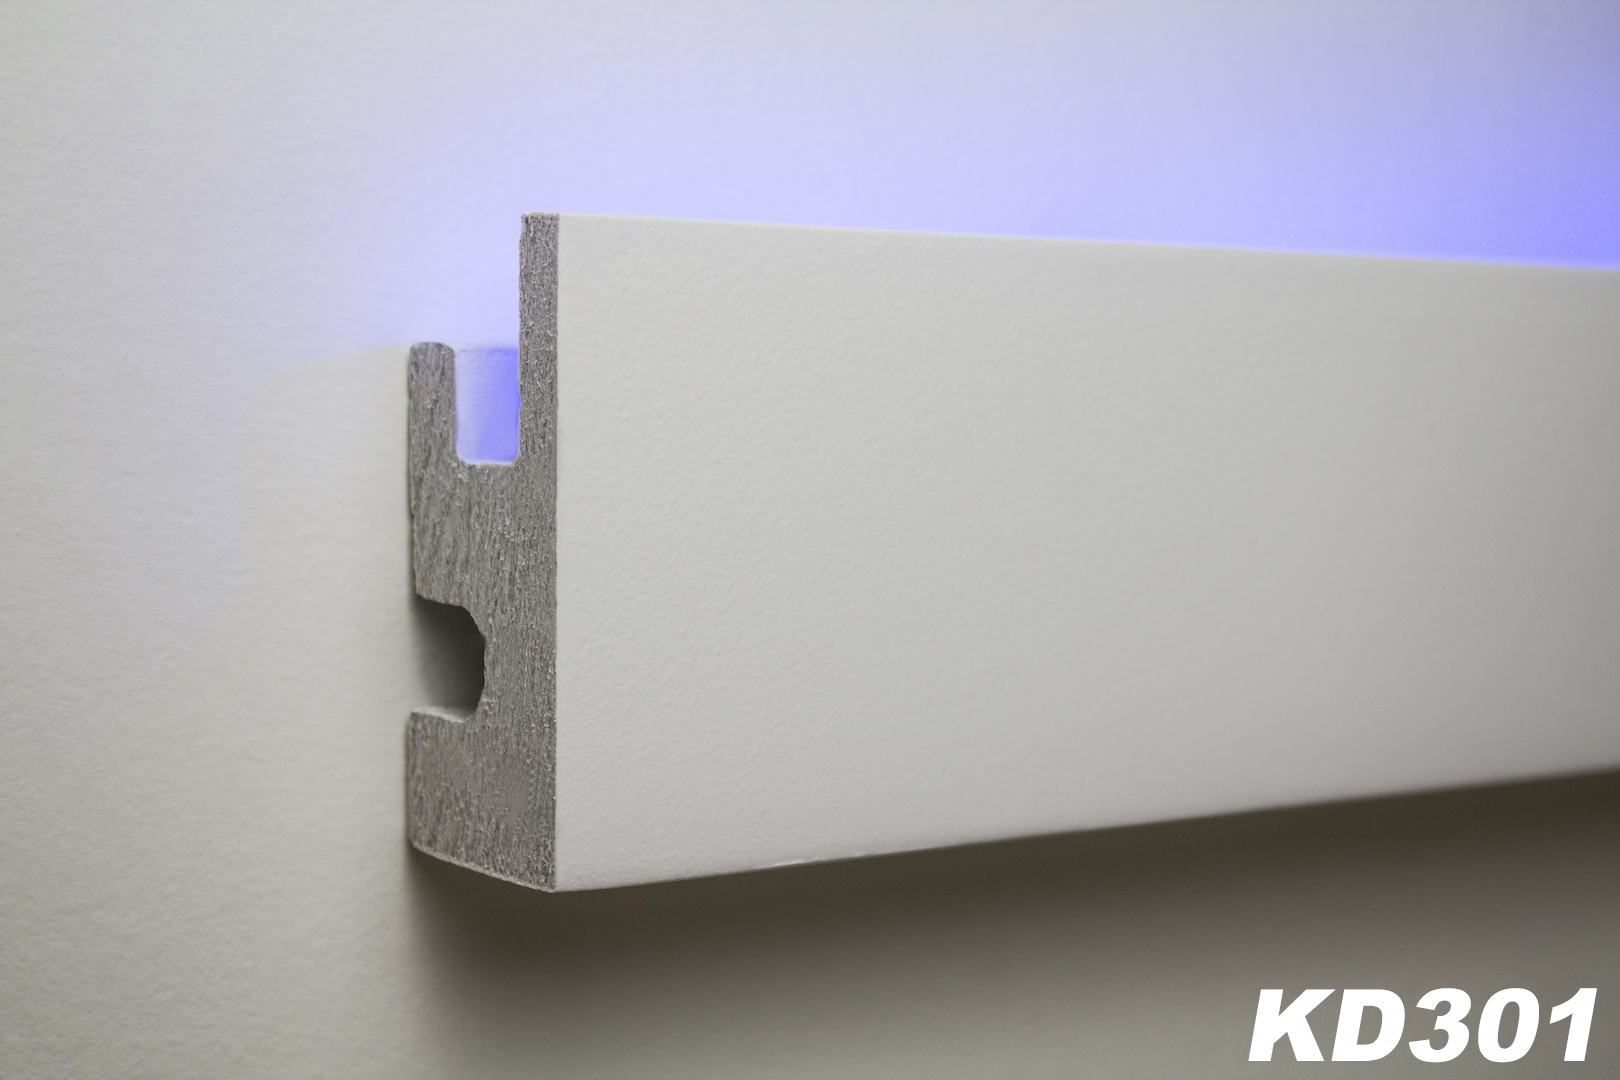 Rigipsplatten Abmessungen 1,15 Metri Led Barra In Stucco Per Illuminazione Indiretta